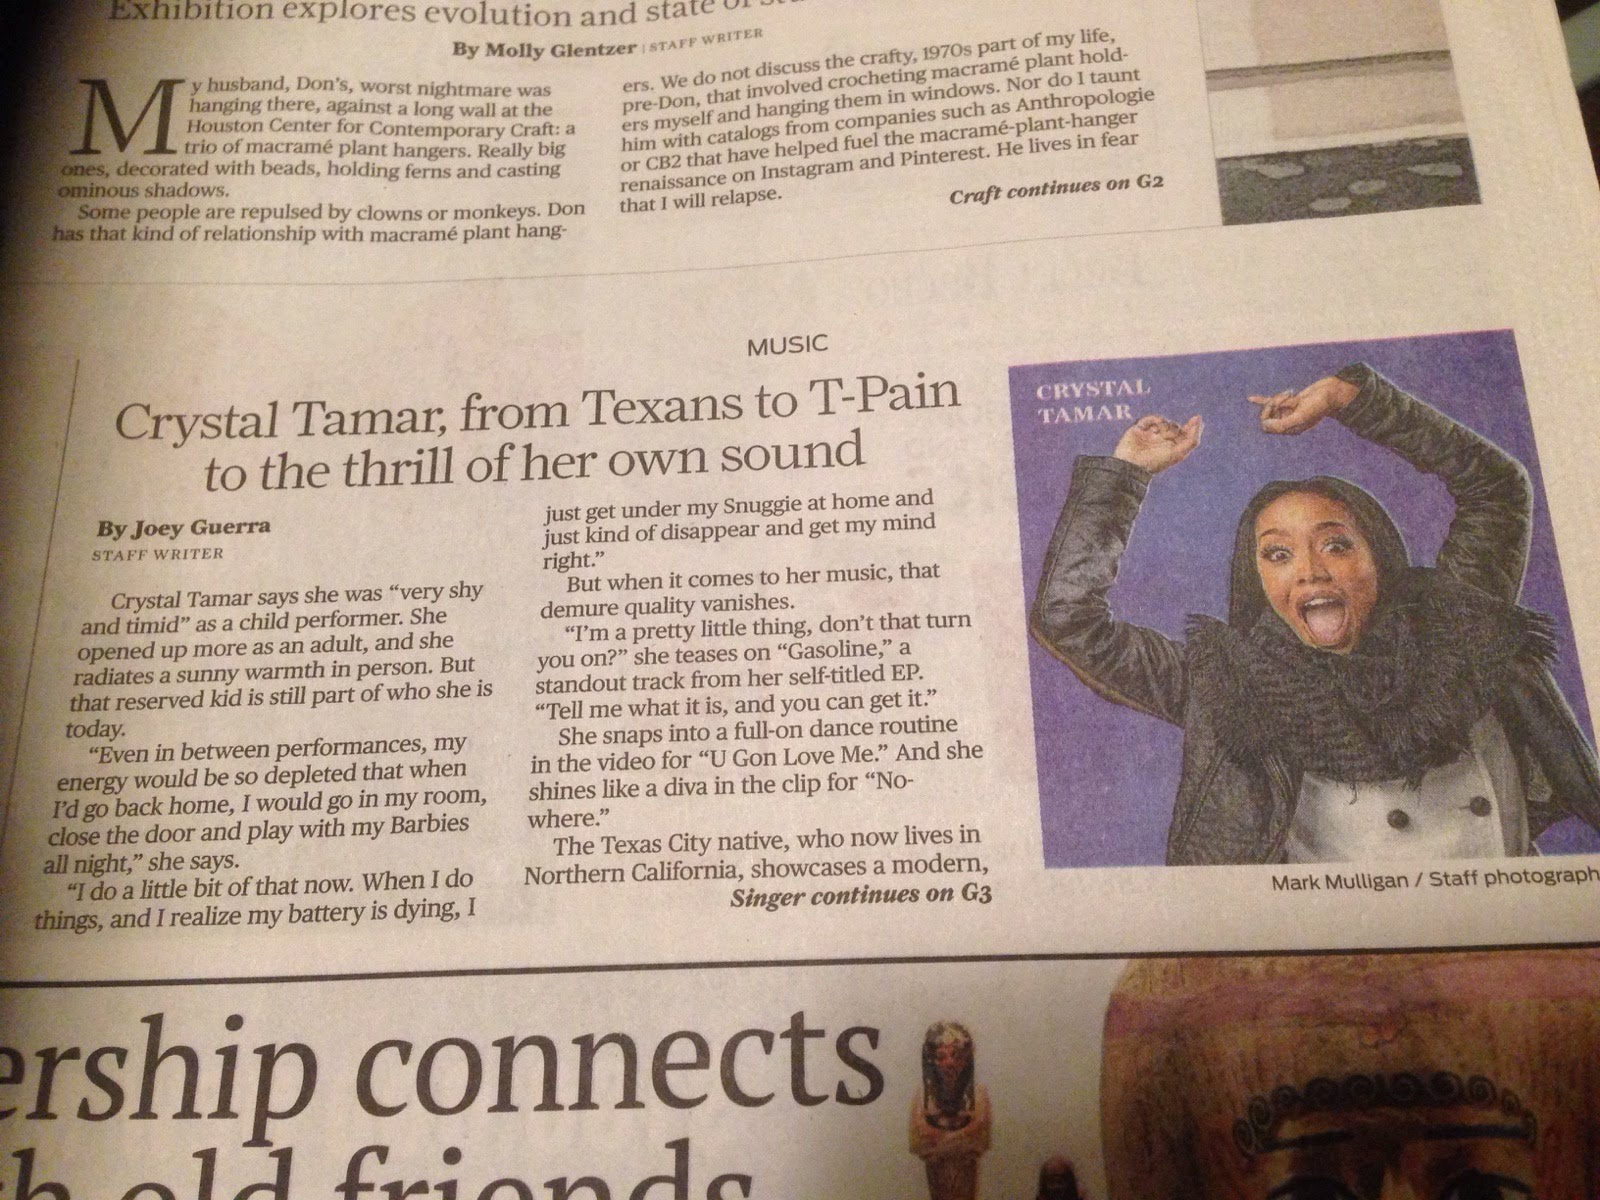 Crystal Tamar featured in the Houston Chronicle